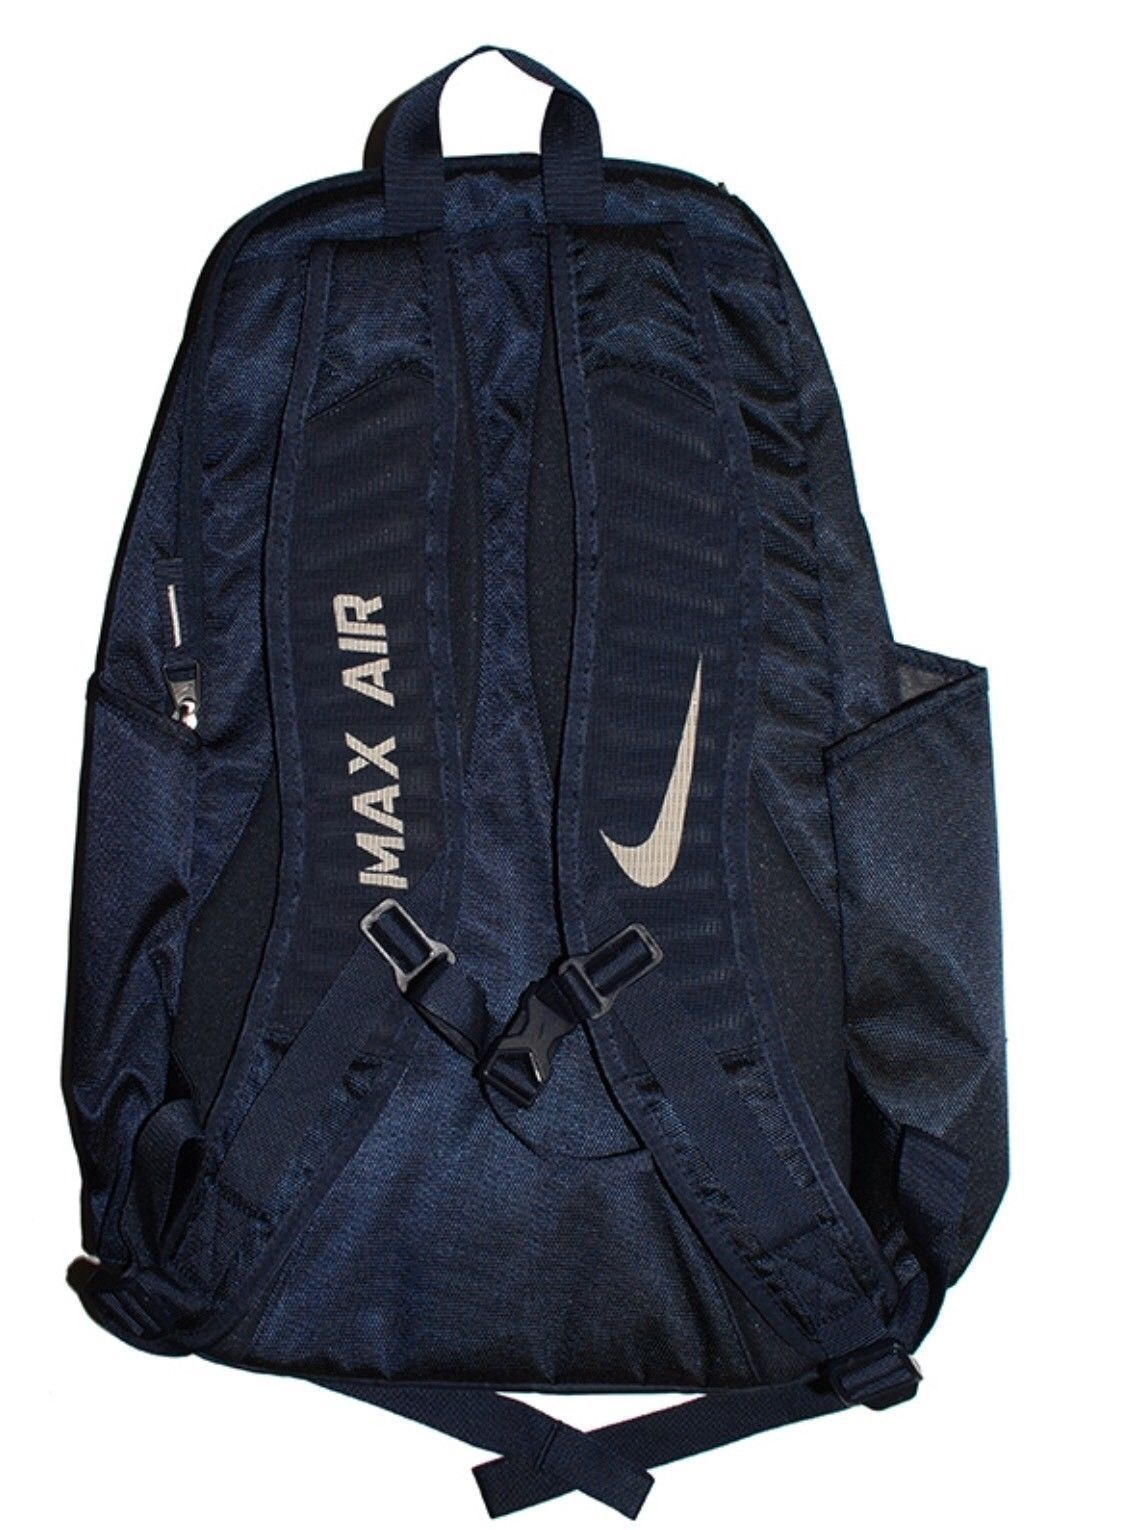 9c560d1a9f Nike Vapor Power Backpack Penn State and 50 similar items